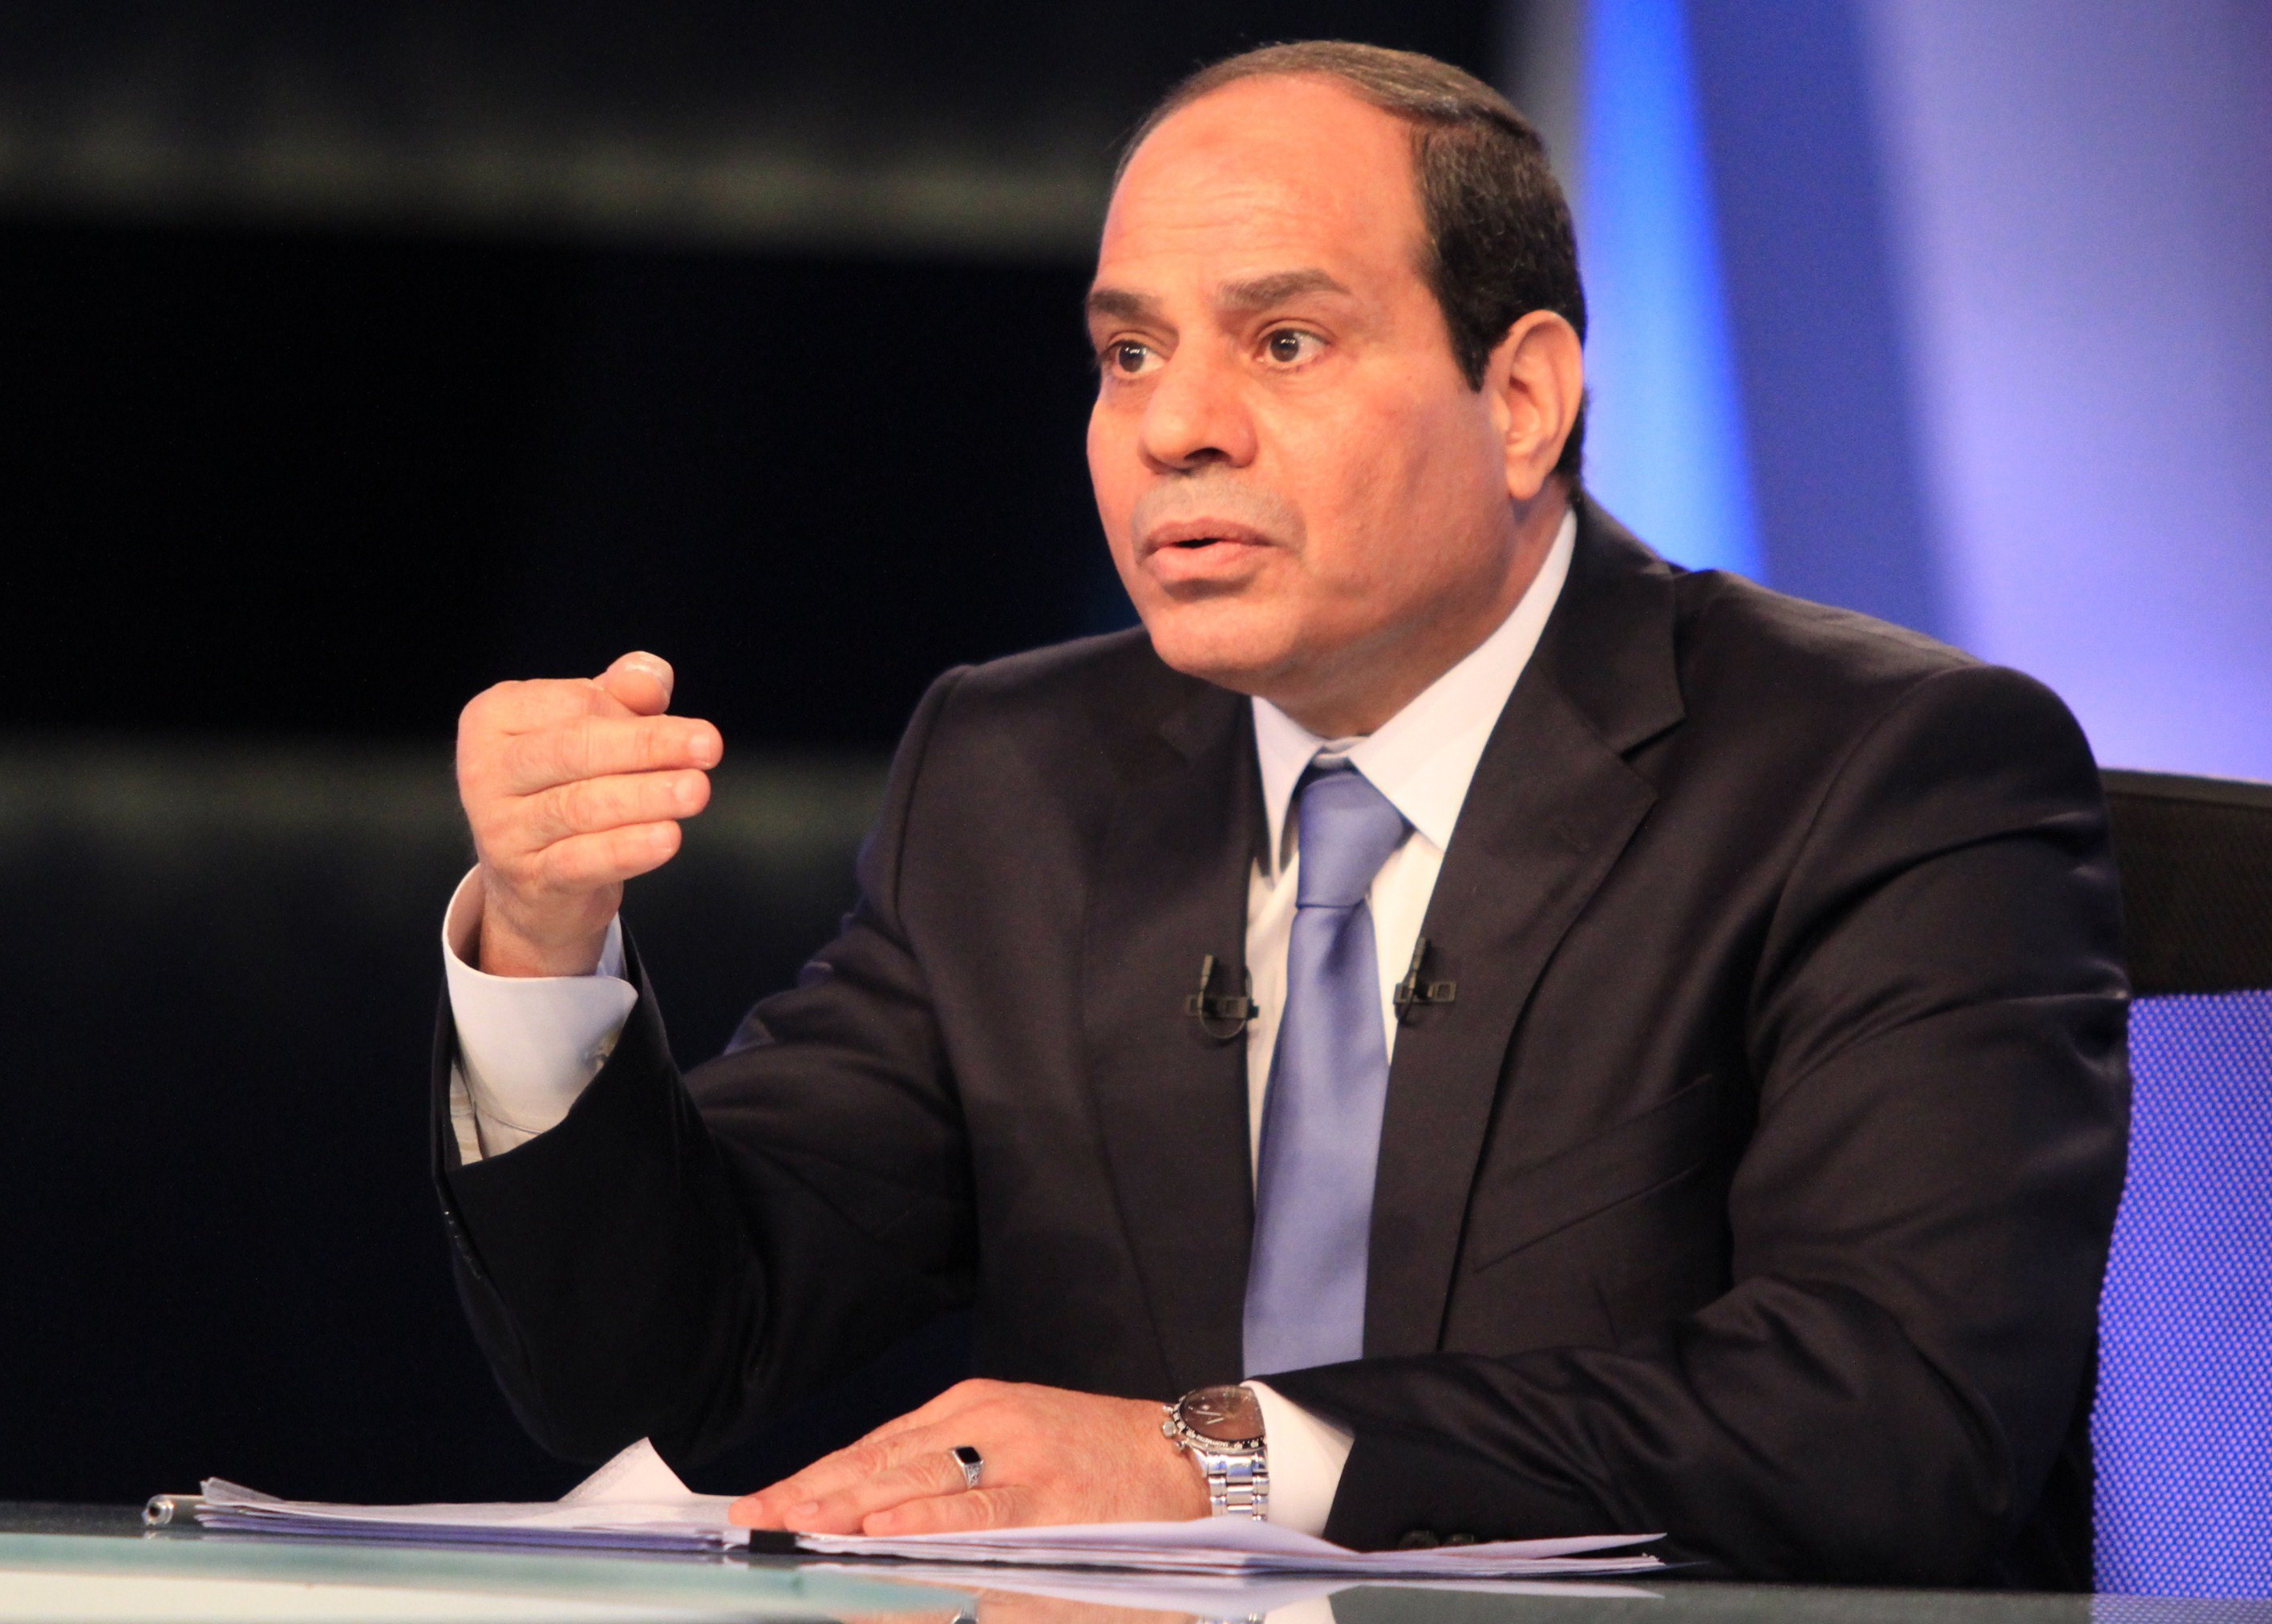 The President of Egypt Abdulfattah Al-Sisi warned from a military intervention in Syria and called for respecting its territorial sovereignty and dealing with the flow of terrorist foreign fighters. mpcmena journal - Hakim Khatib